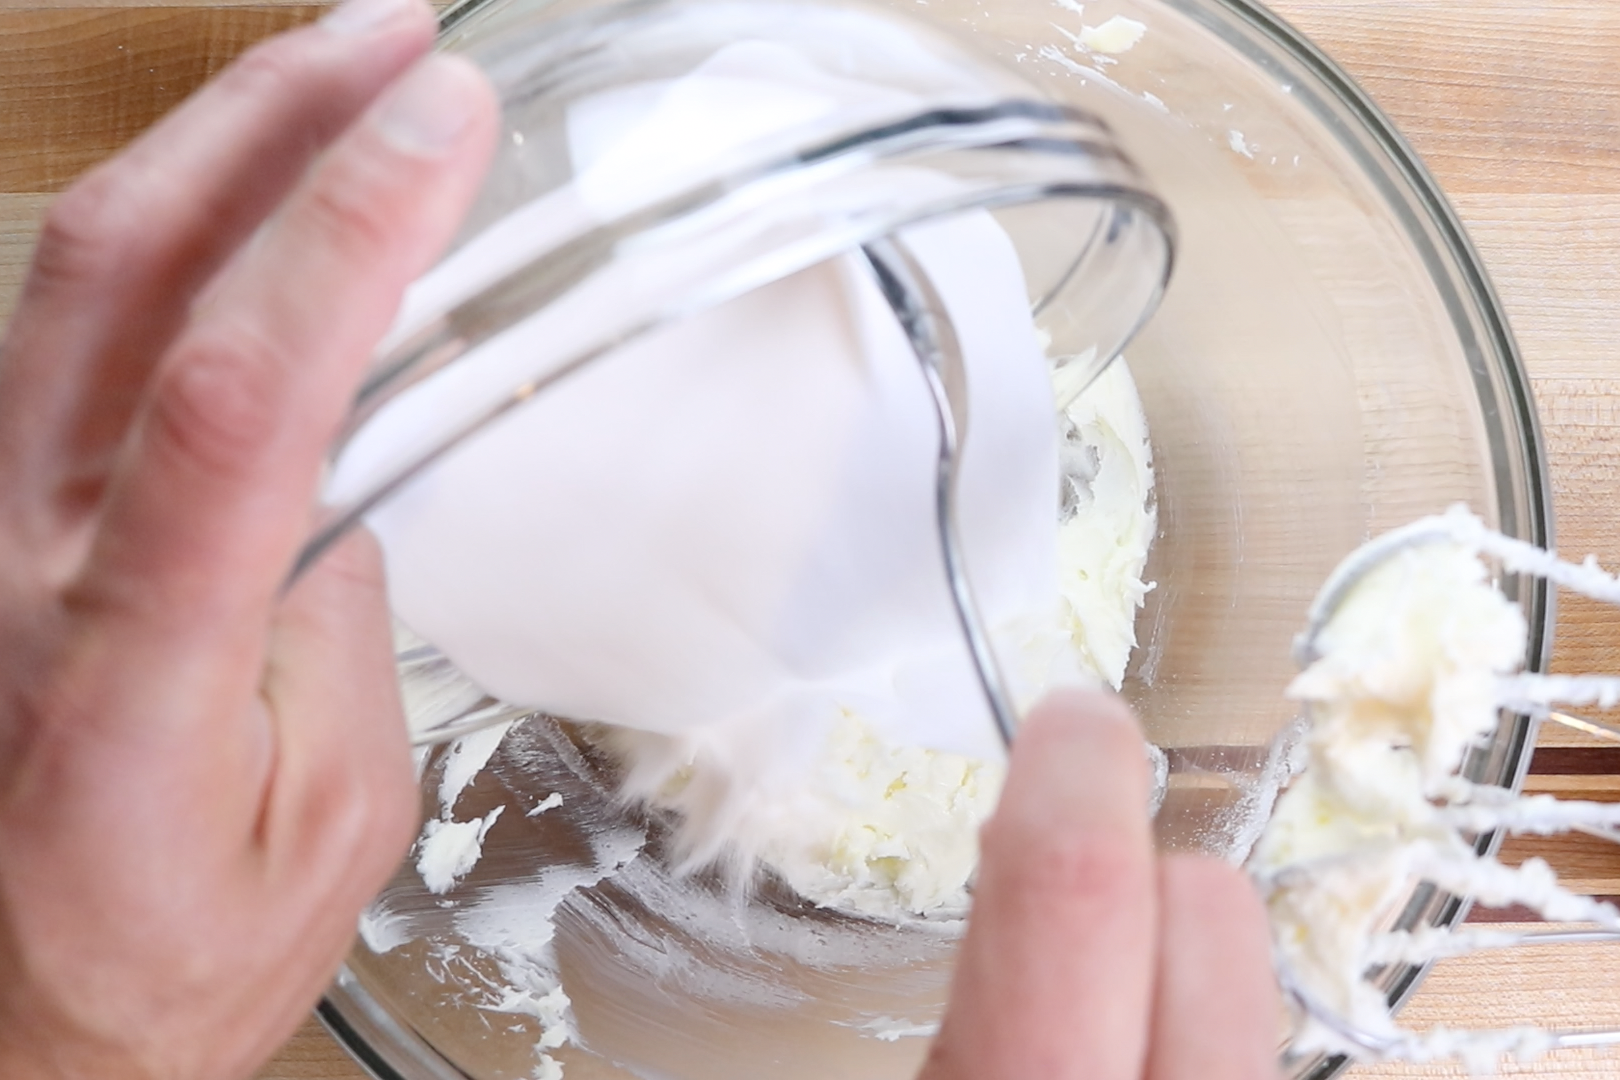 2. Slowly add sugar and mix over medium-low speed until incorporated. -